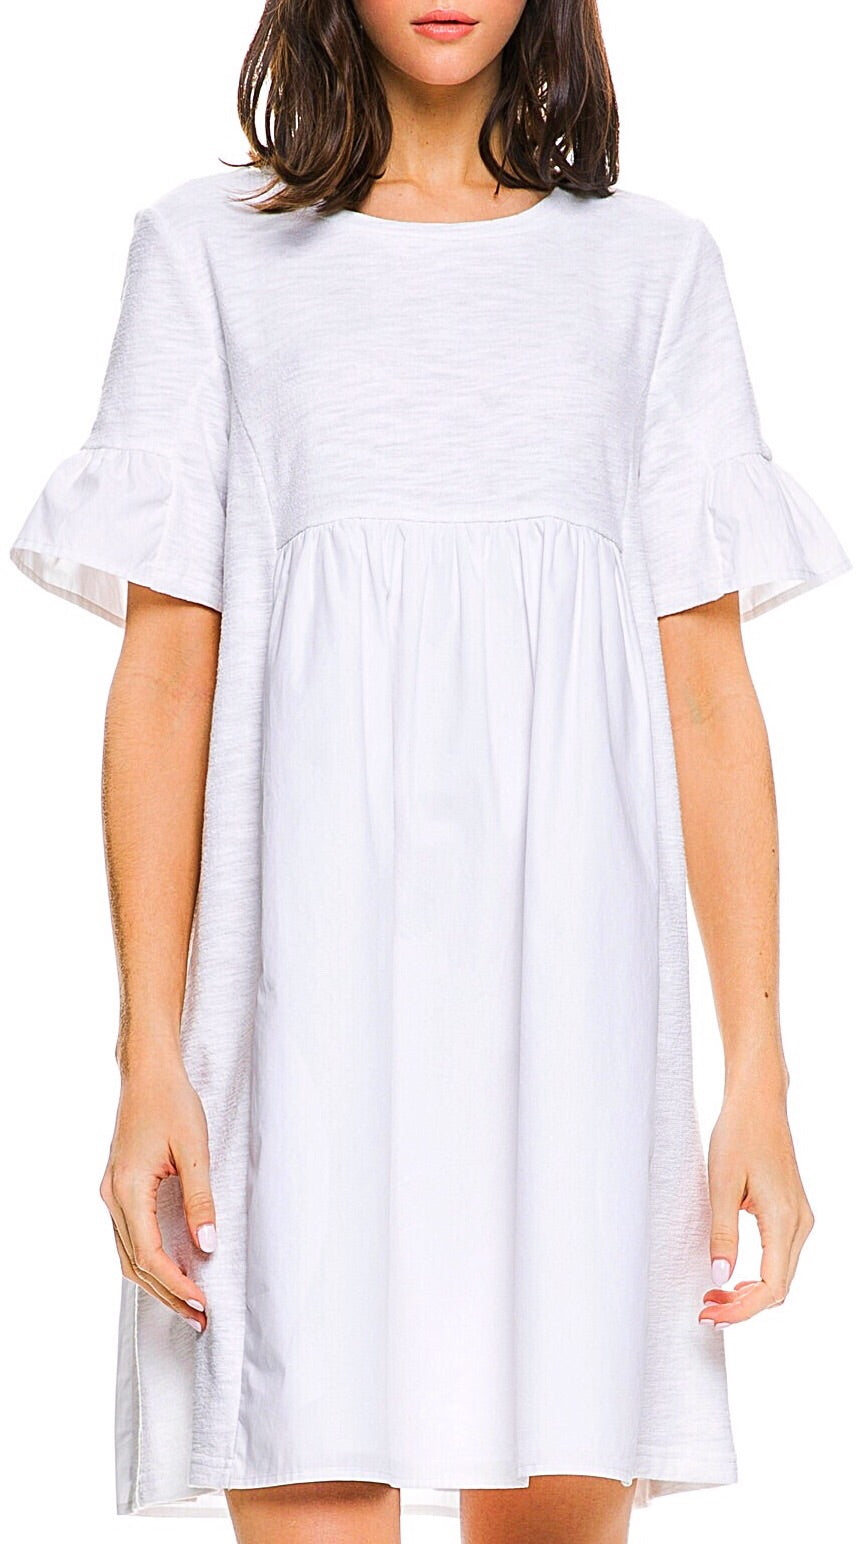 Easy Poplin Dress - White